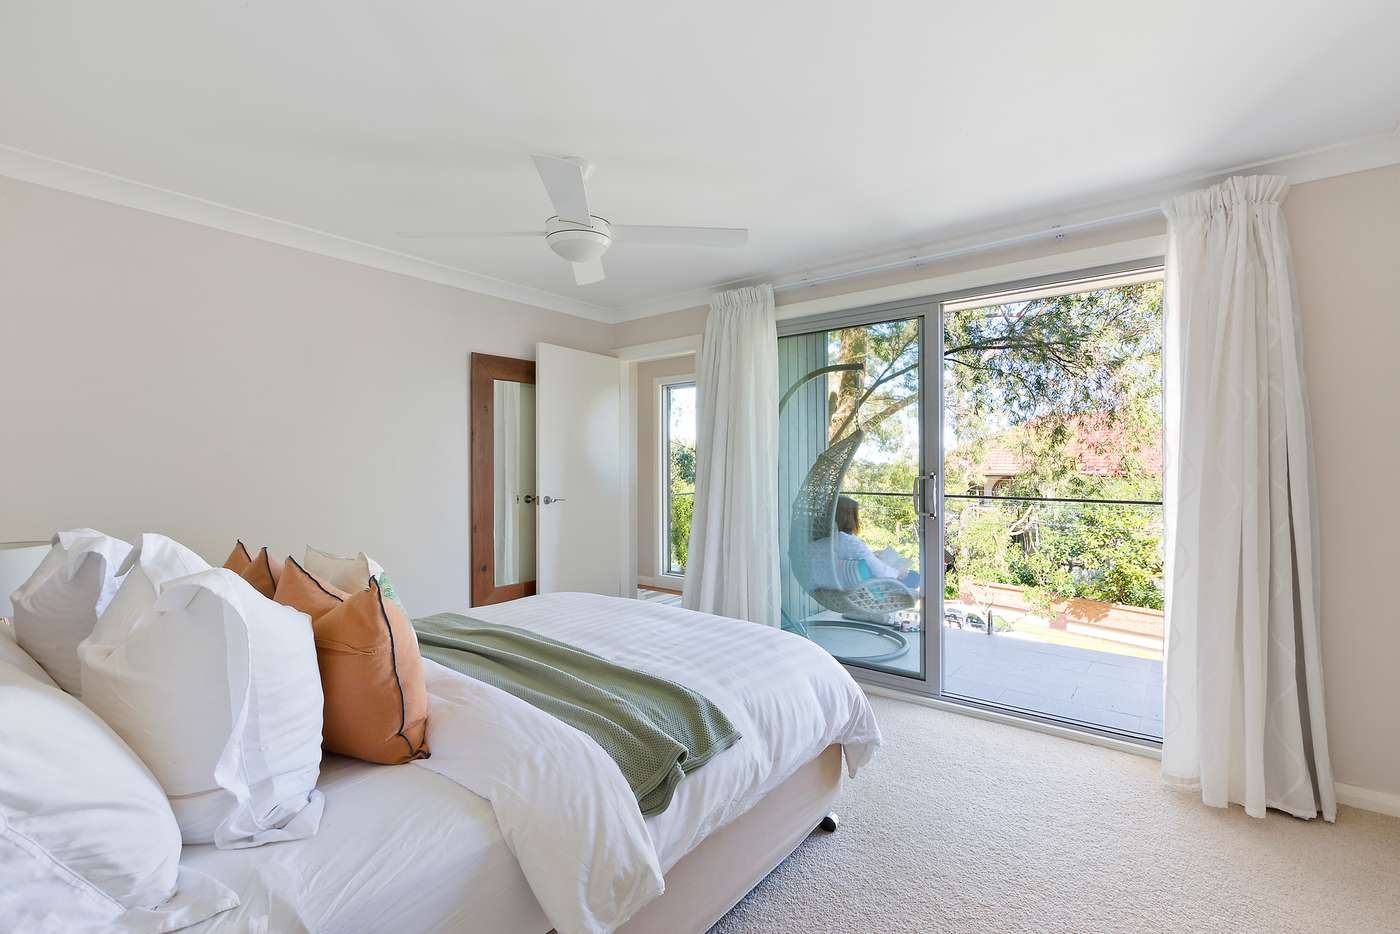 Sixth view of Homely house listing, 16 Ryan Place, Beacon Hill NSW 2100